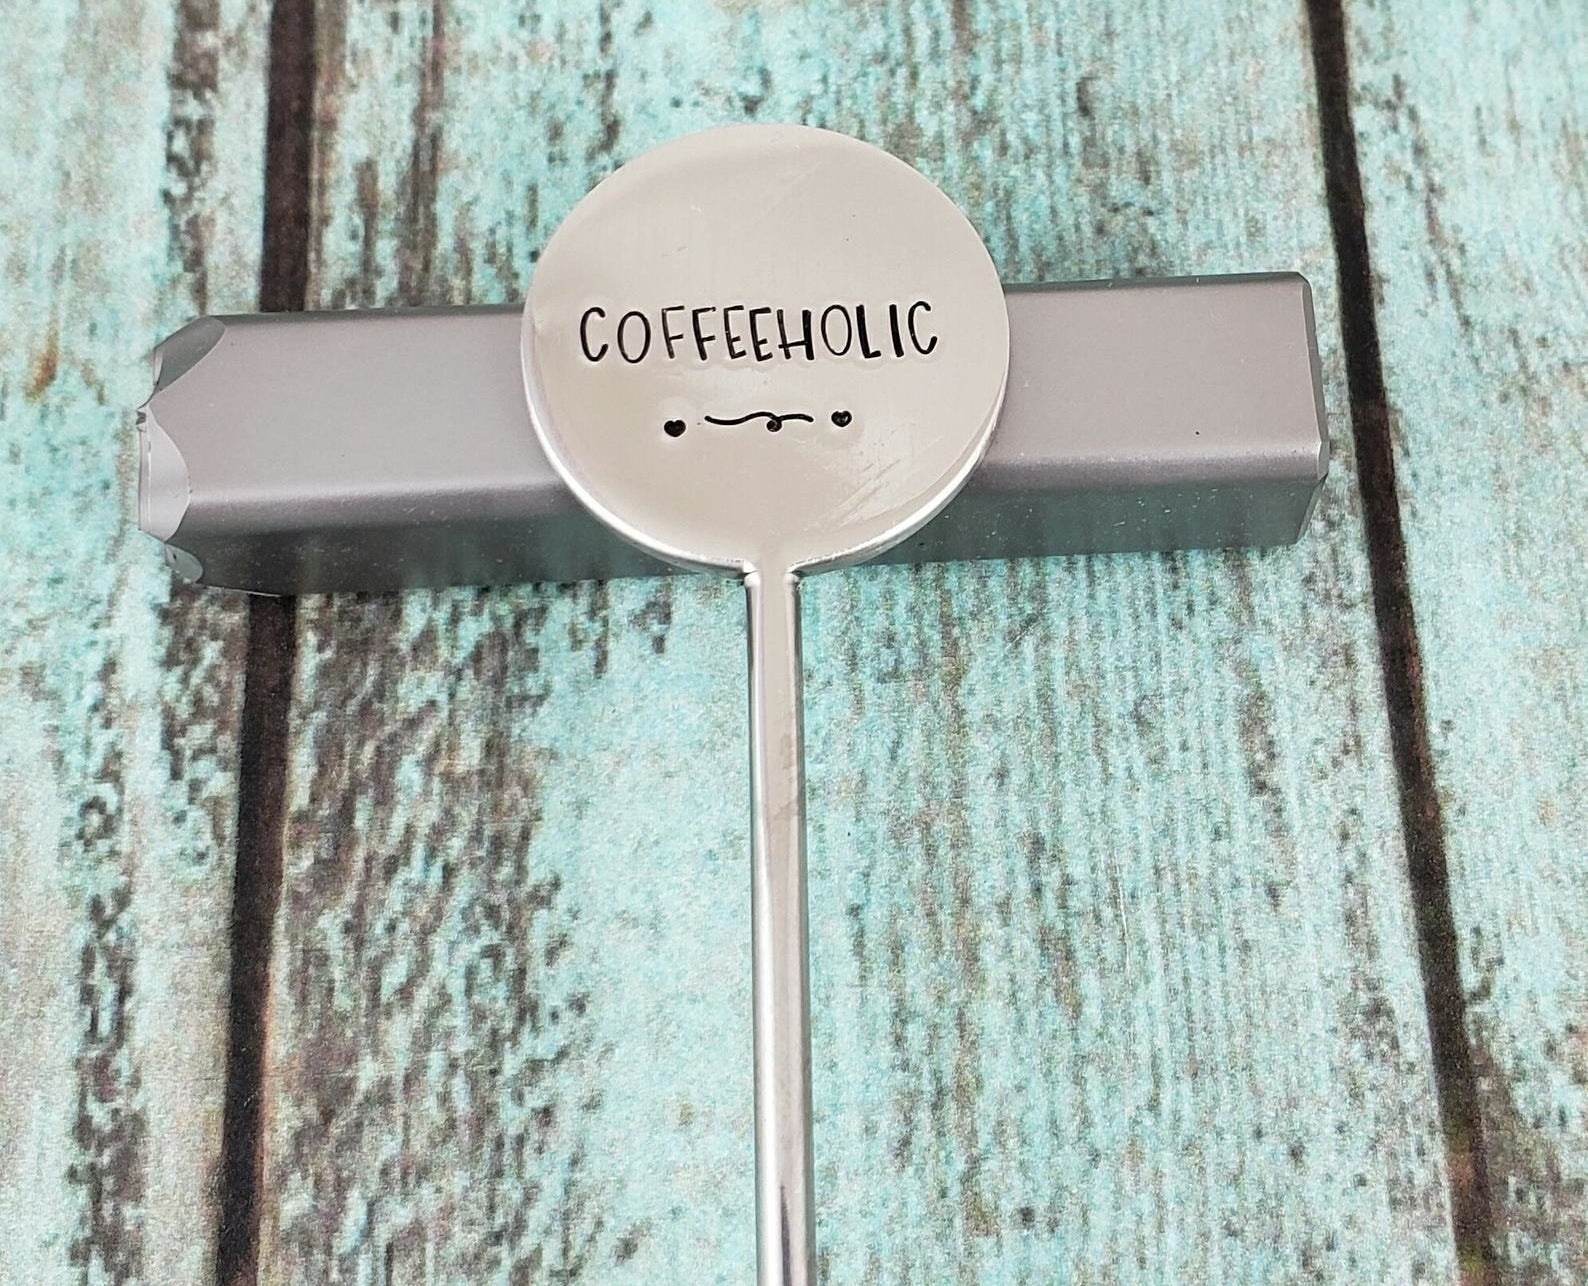 """the silver stirrer spoon with """"coffeeholic"""" engraved on it"""